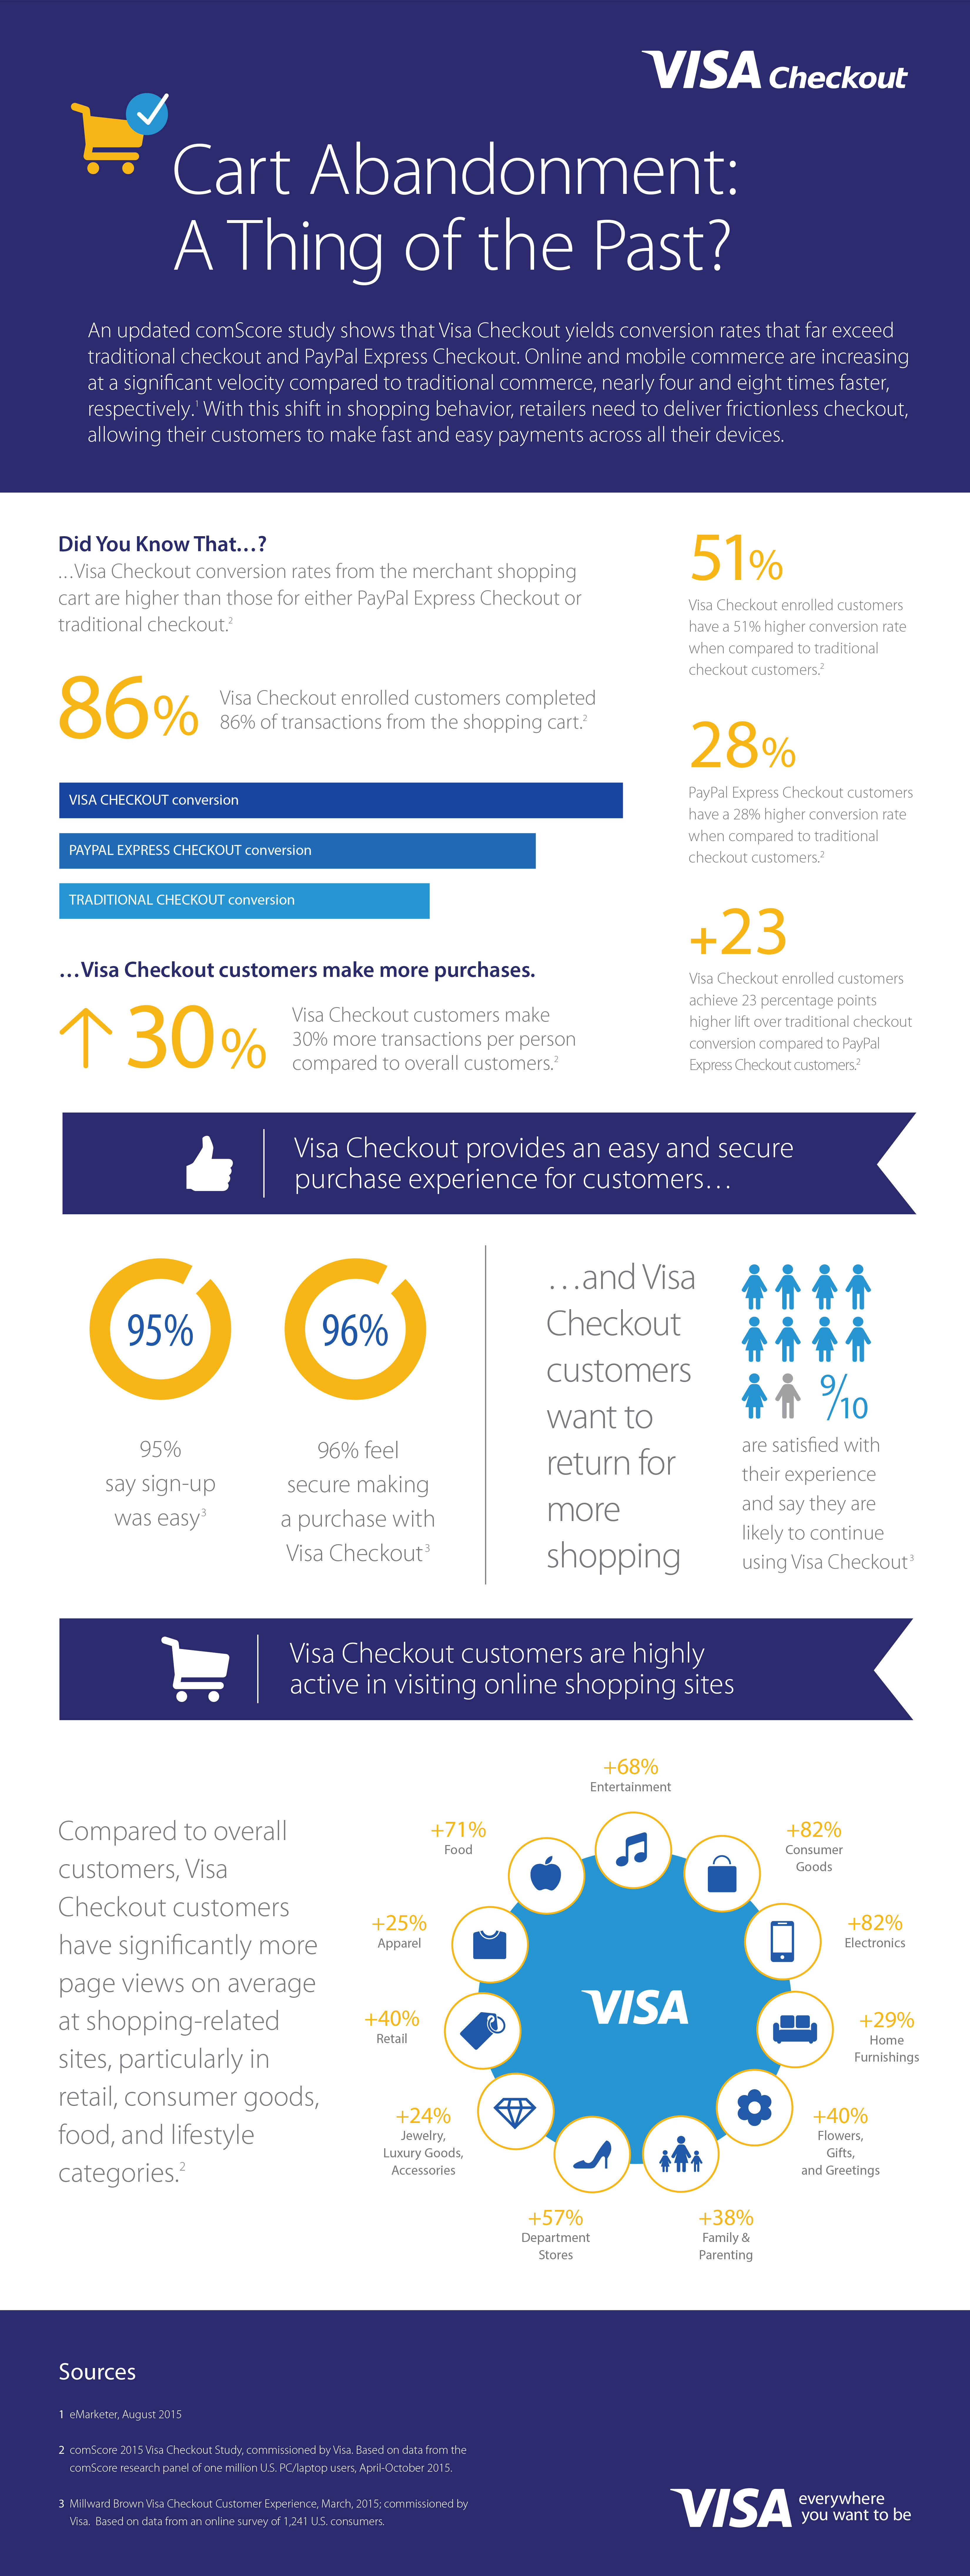 More Leading Merchants Choose Visa Checkout To Increase Online And Mobile S Business Wire